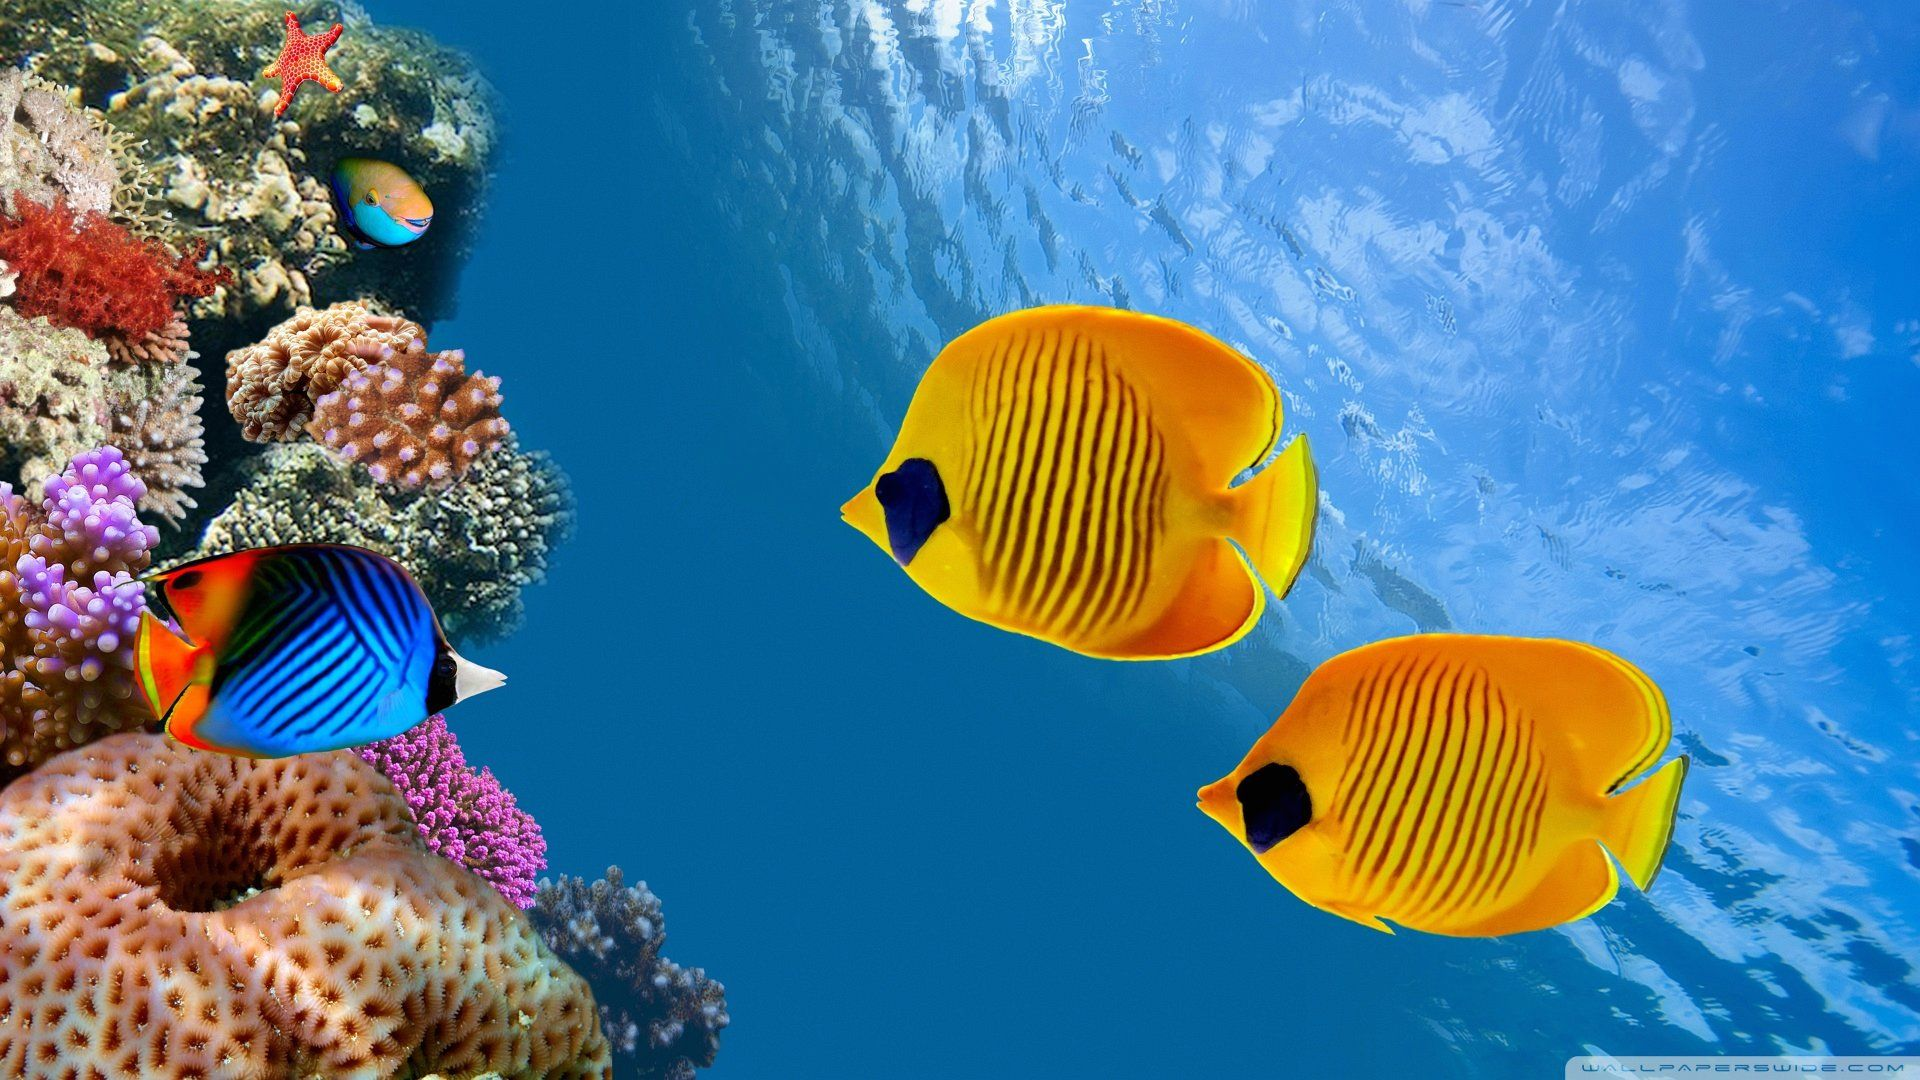 Fish Hd Wallpapers Backgrounds Wallpaper Fish Wallpaper Underwater Wallpaper Animal Wallpaper